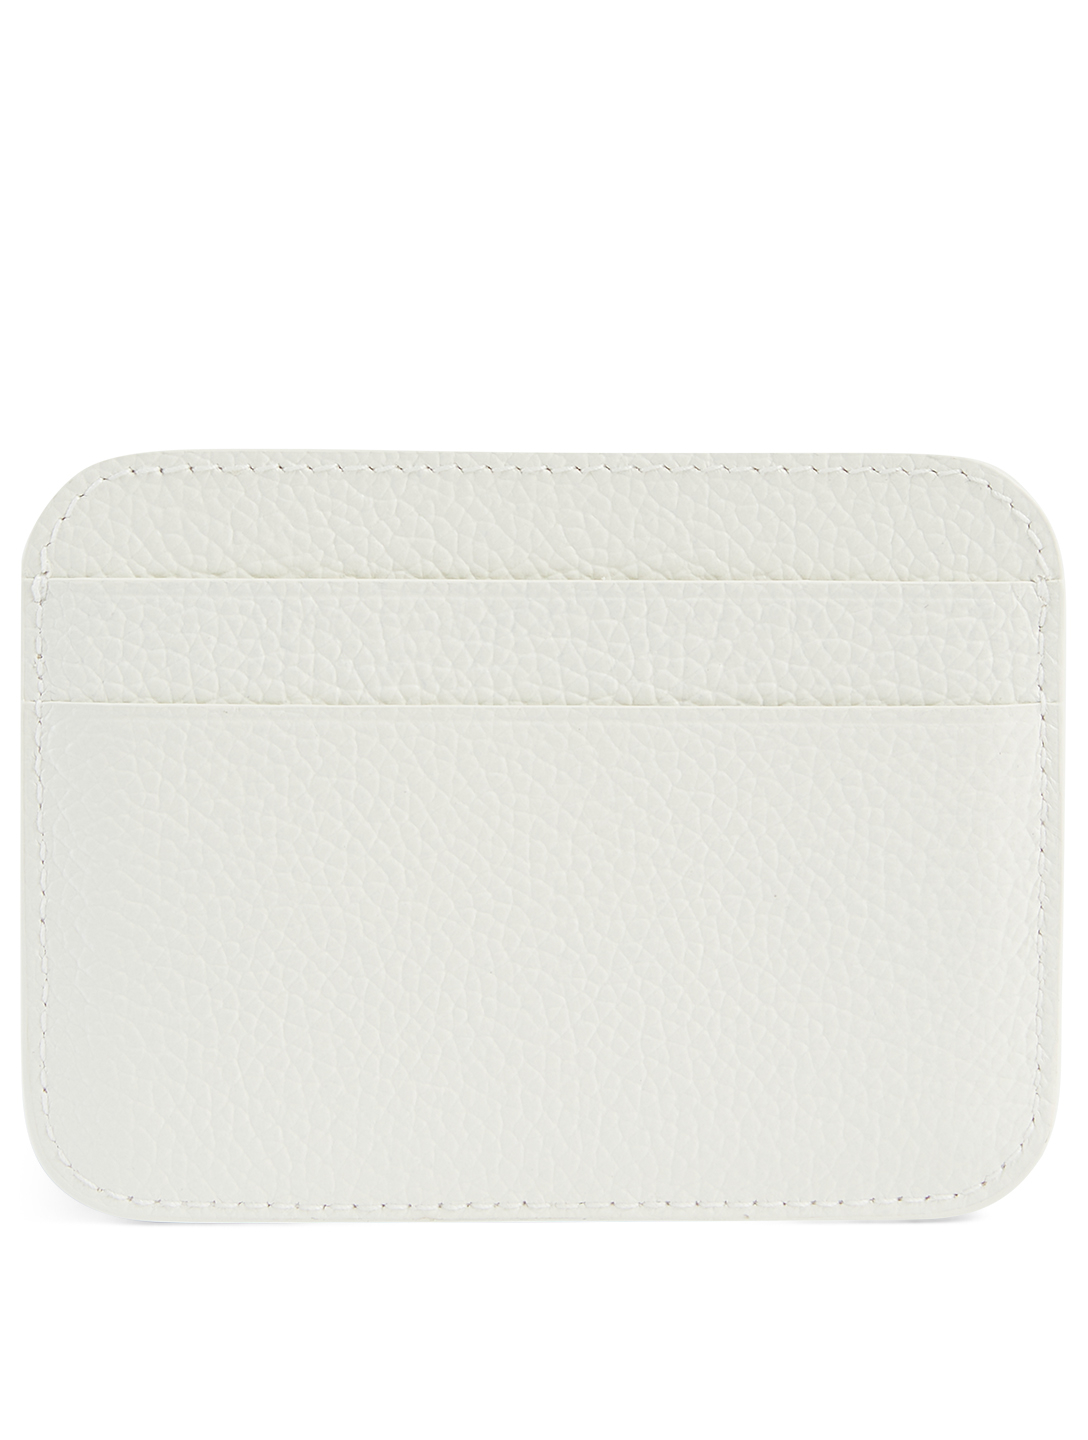 BALENCIAGA Cash Everyday Leather Card Holder Women's White